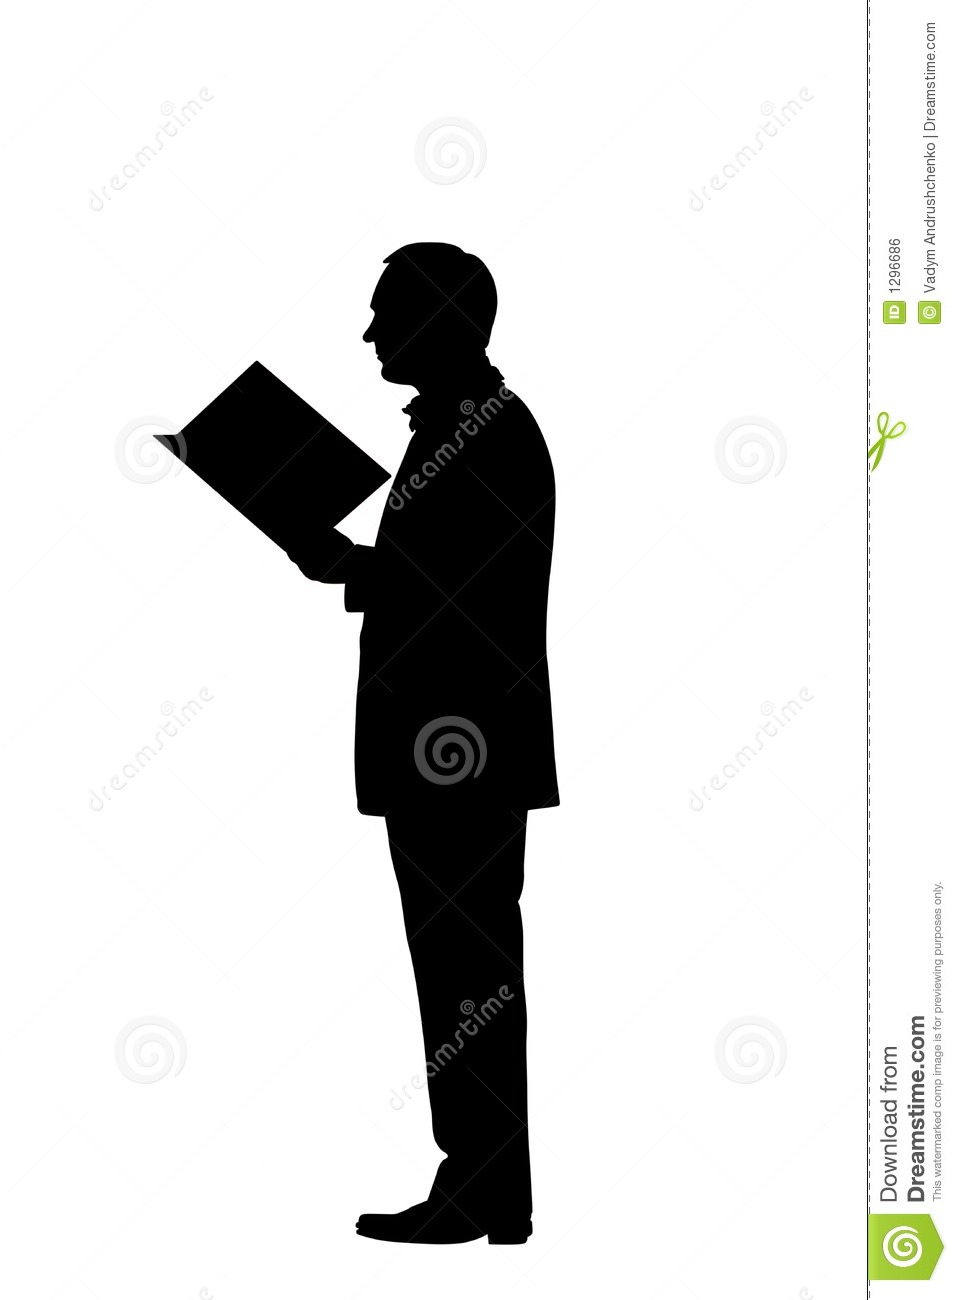 Royalty Free Stock Image: Reading man silhouette with clipping path